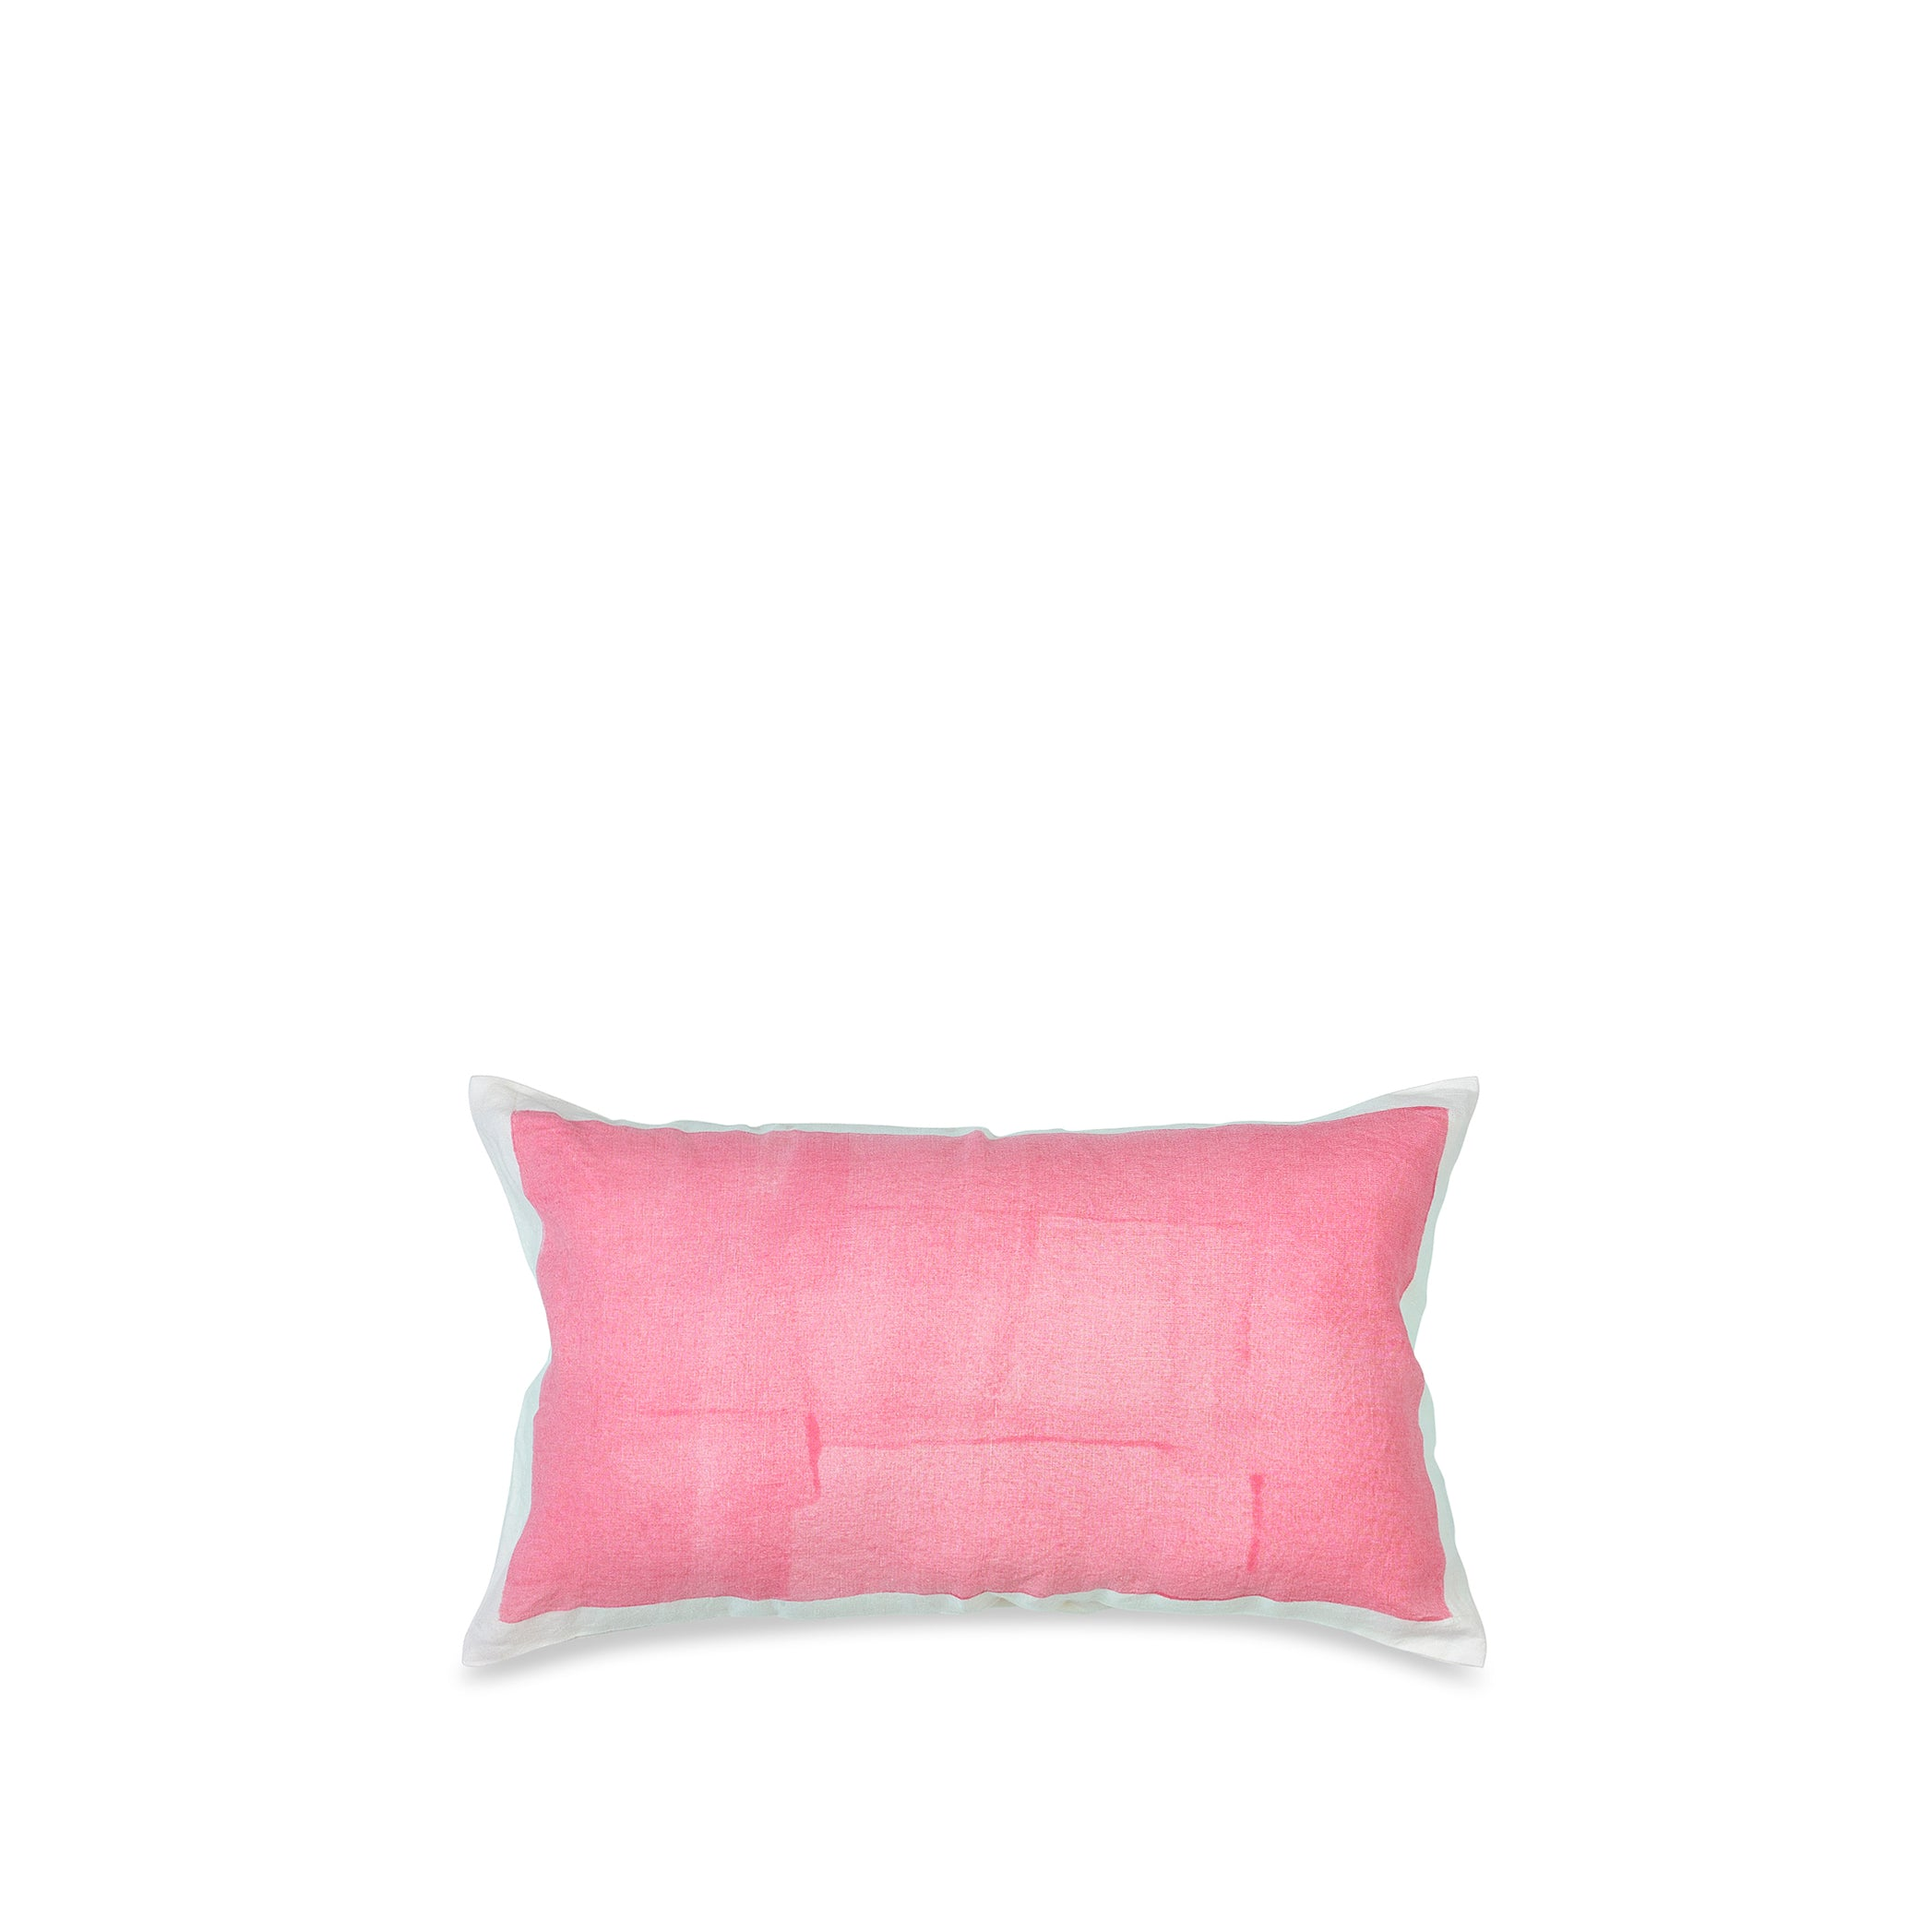 Hand Painted Linen Cushion Cover in Rose Pink, 50cm x 30cm